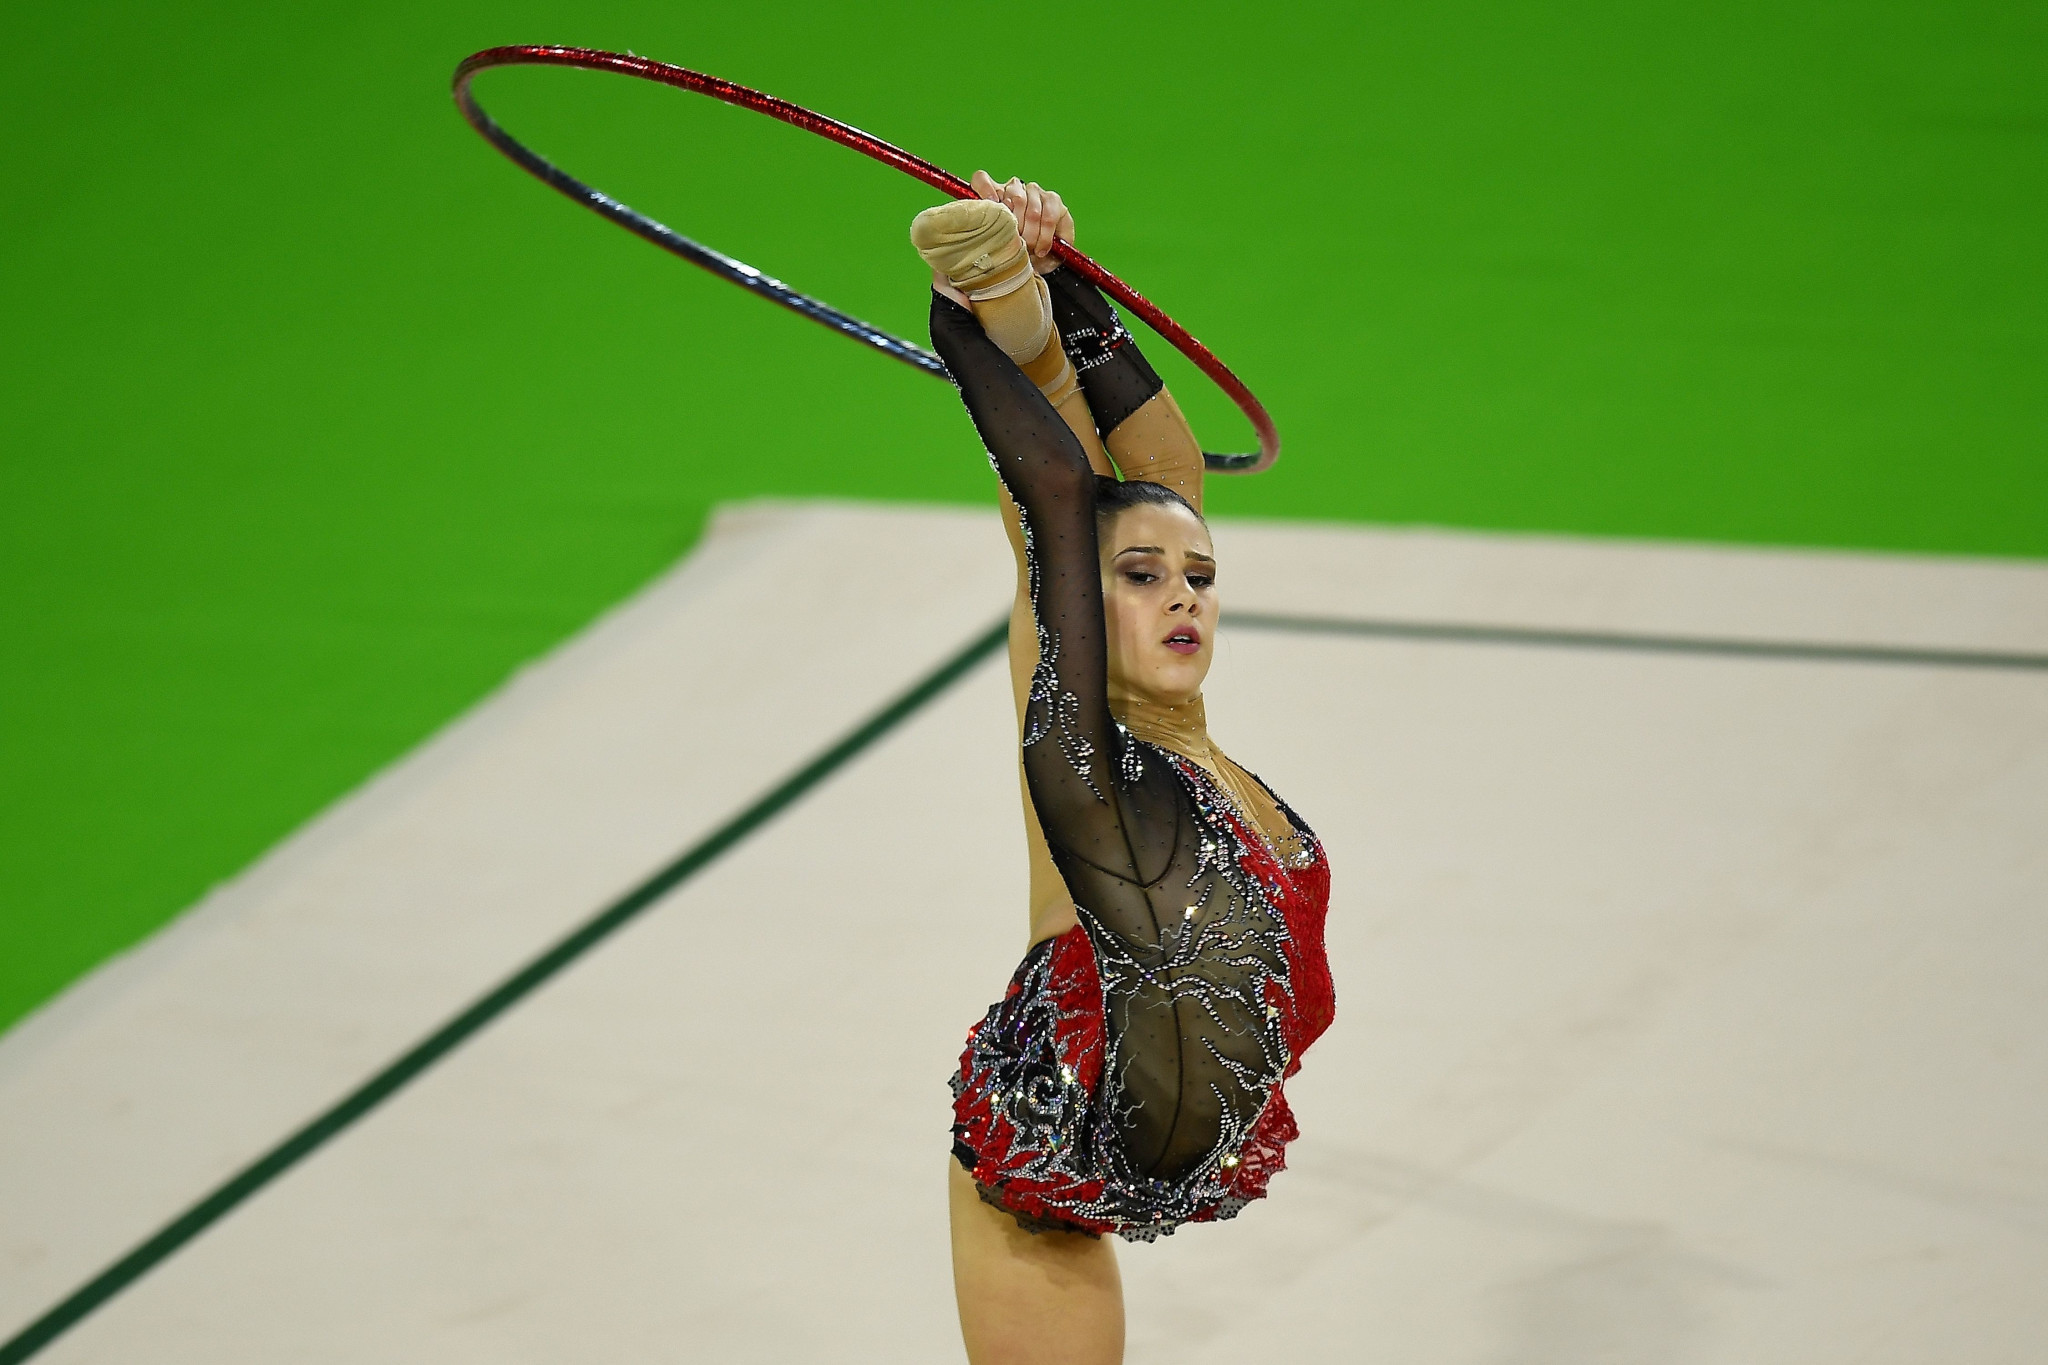 Cyprus' Diamanto Evripidou won the hoop at the rhythmic gymnastics ends Gold Coast 2018 with a total of six medals ©Getty Images